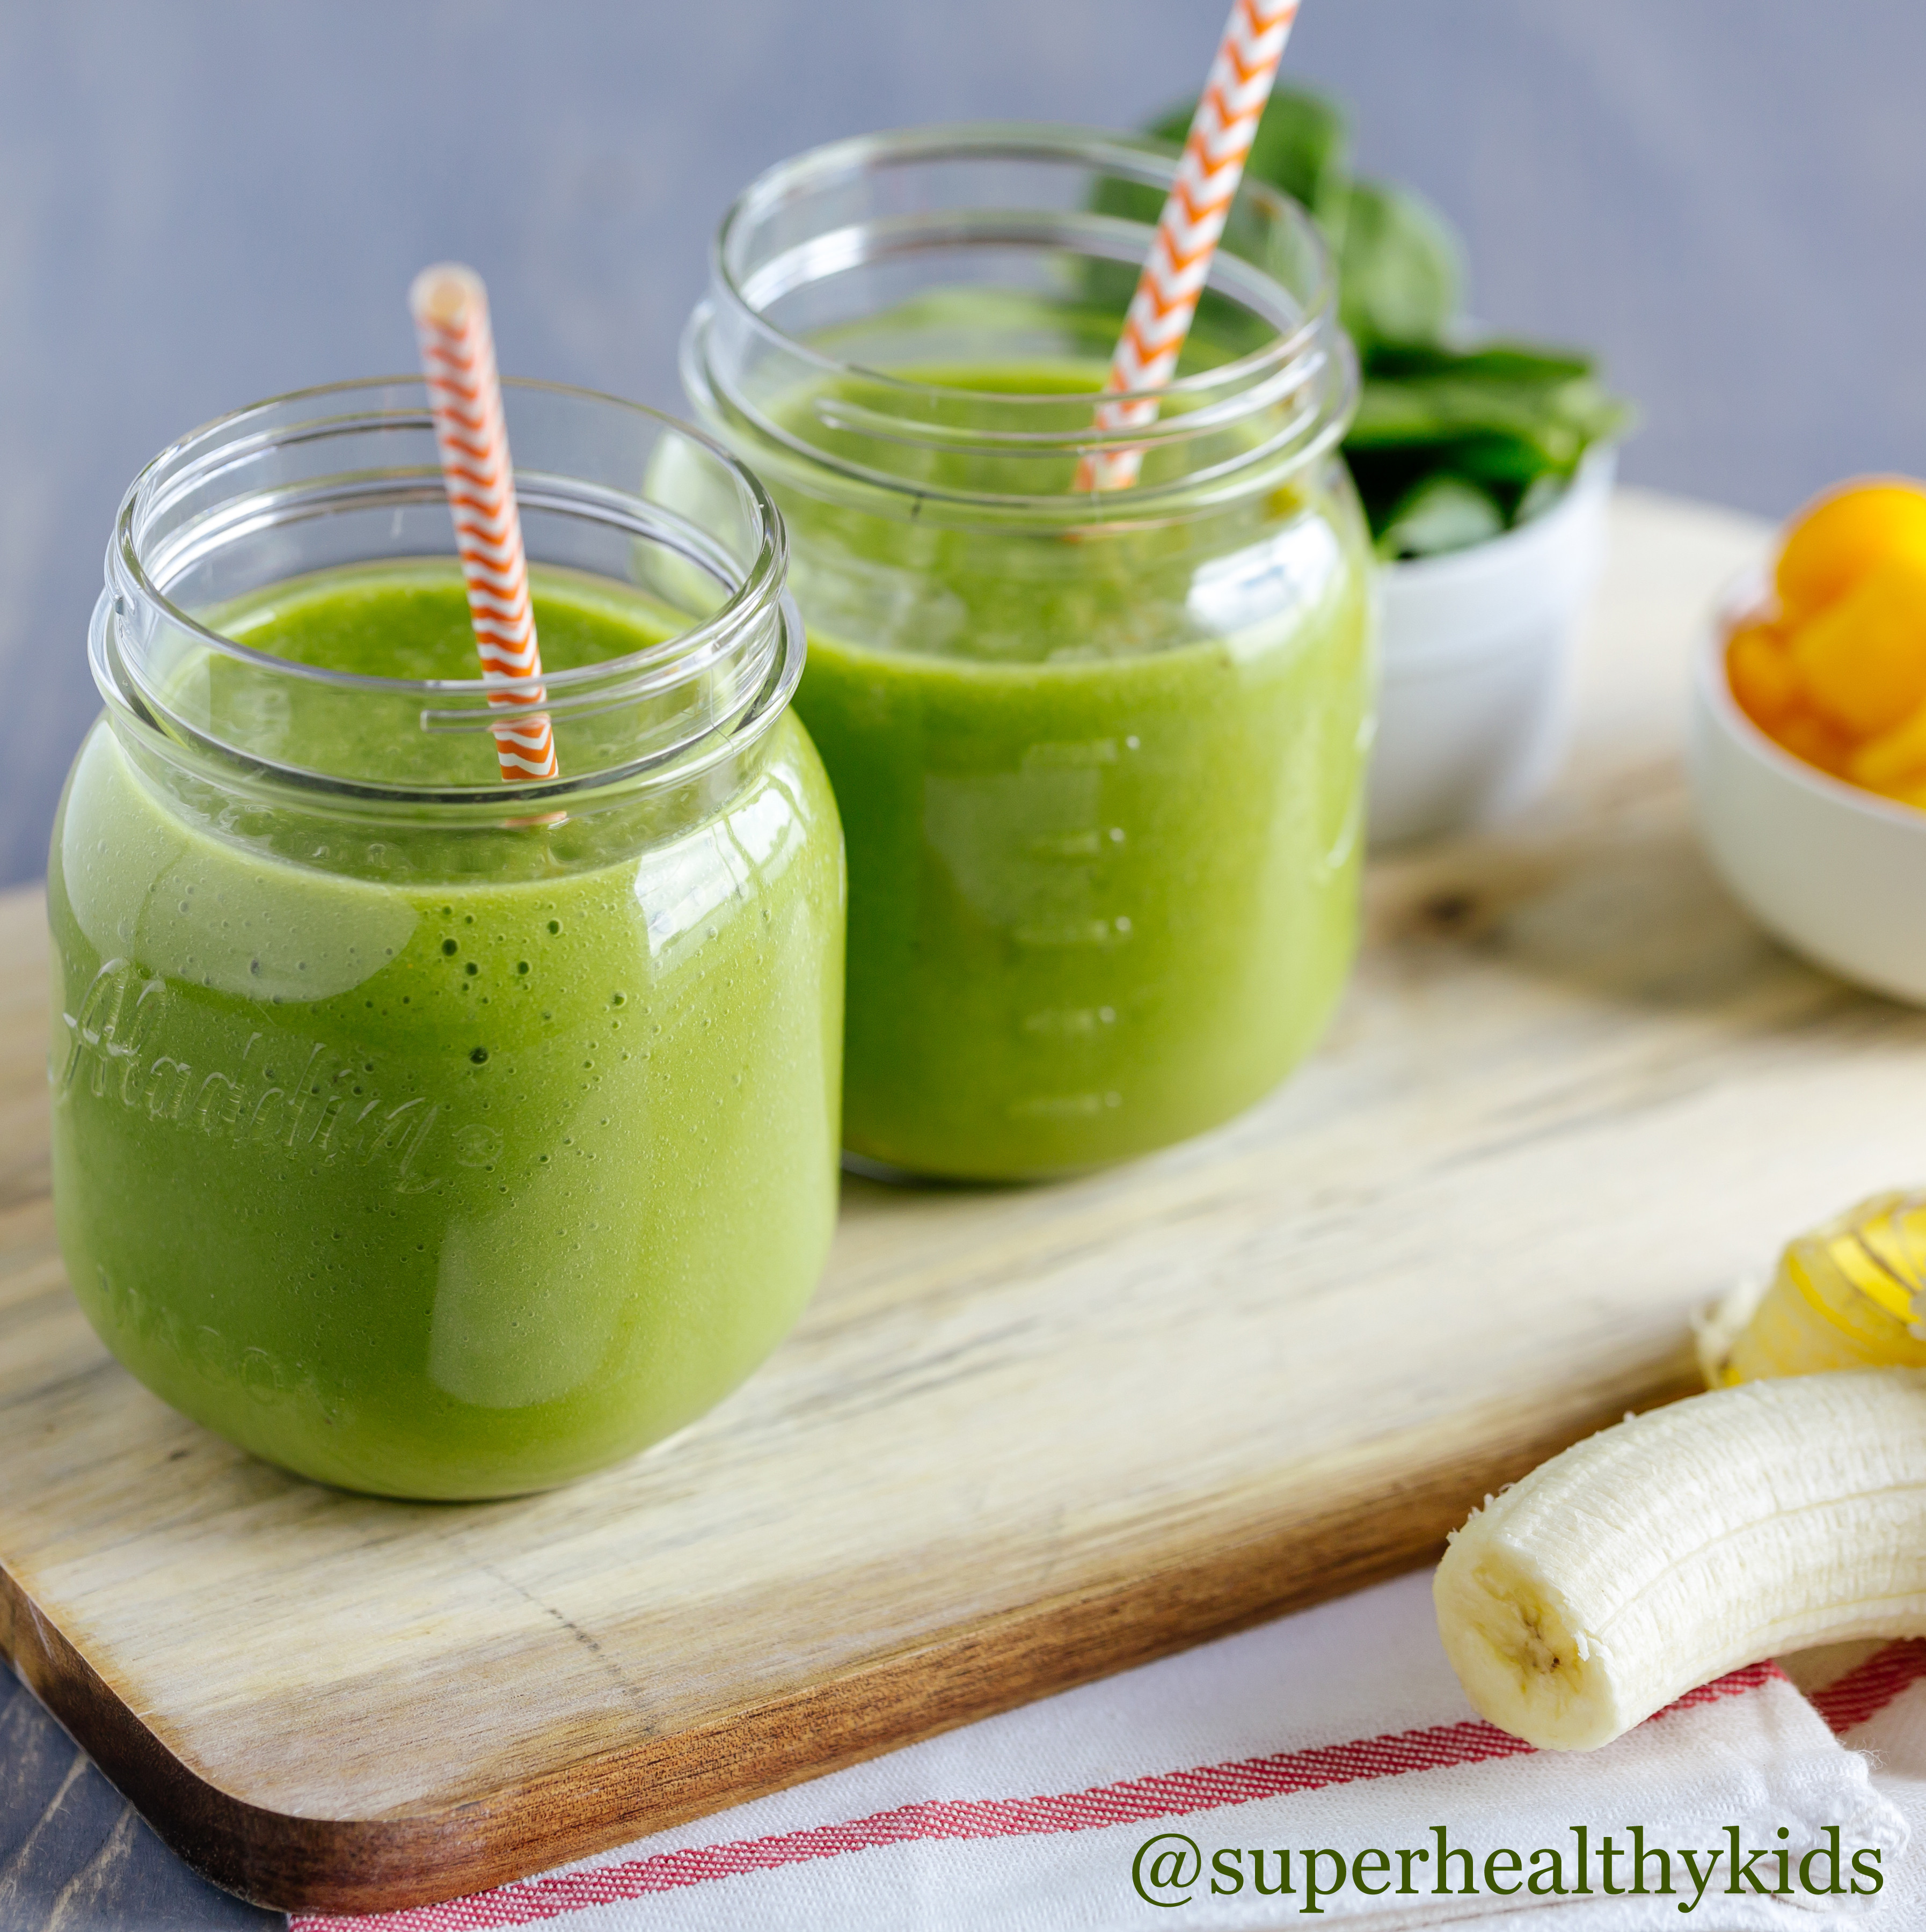 Healthy Green Smoothie Recipes  Smoothie Recipes Green Smoothie Kids